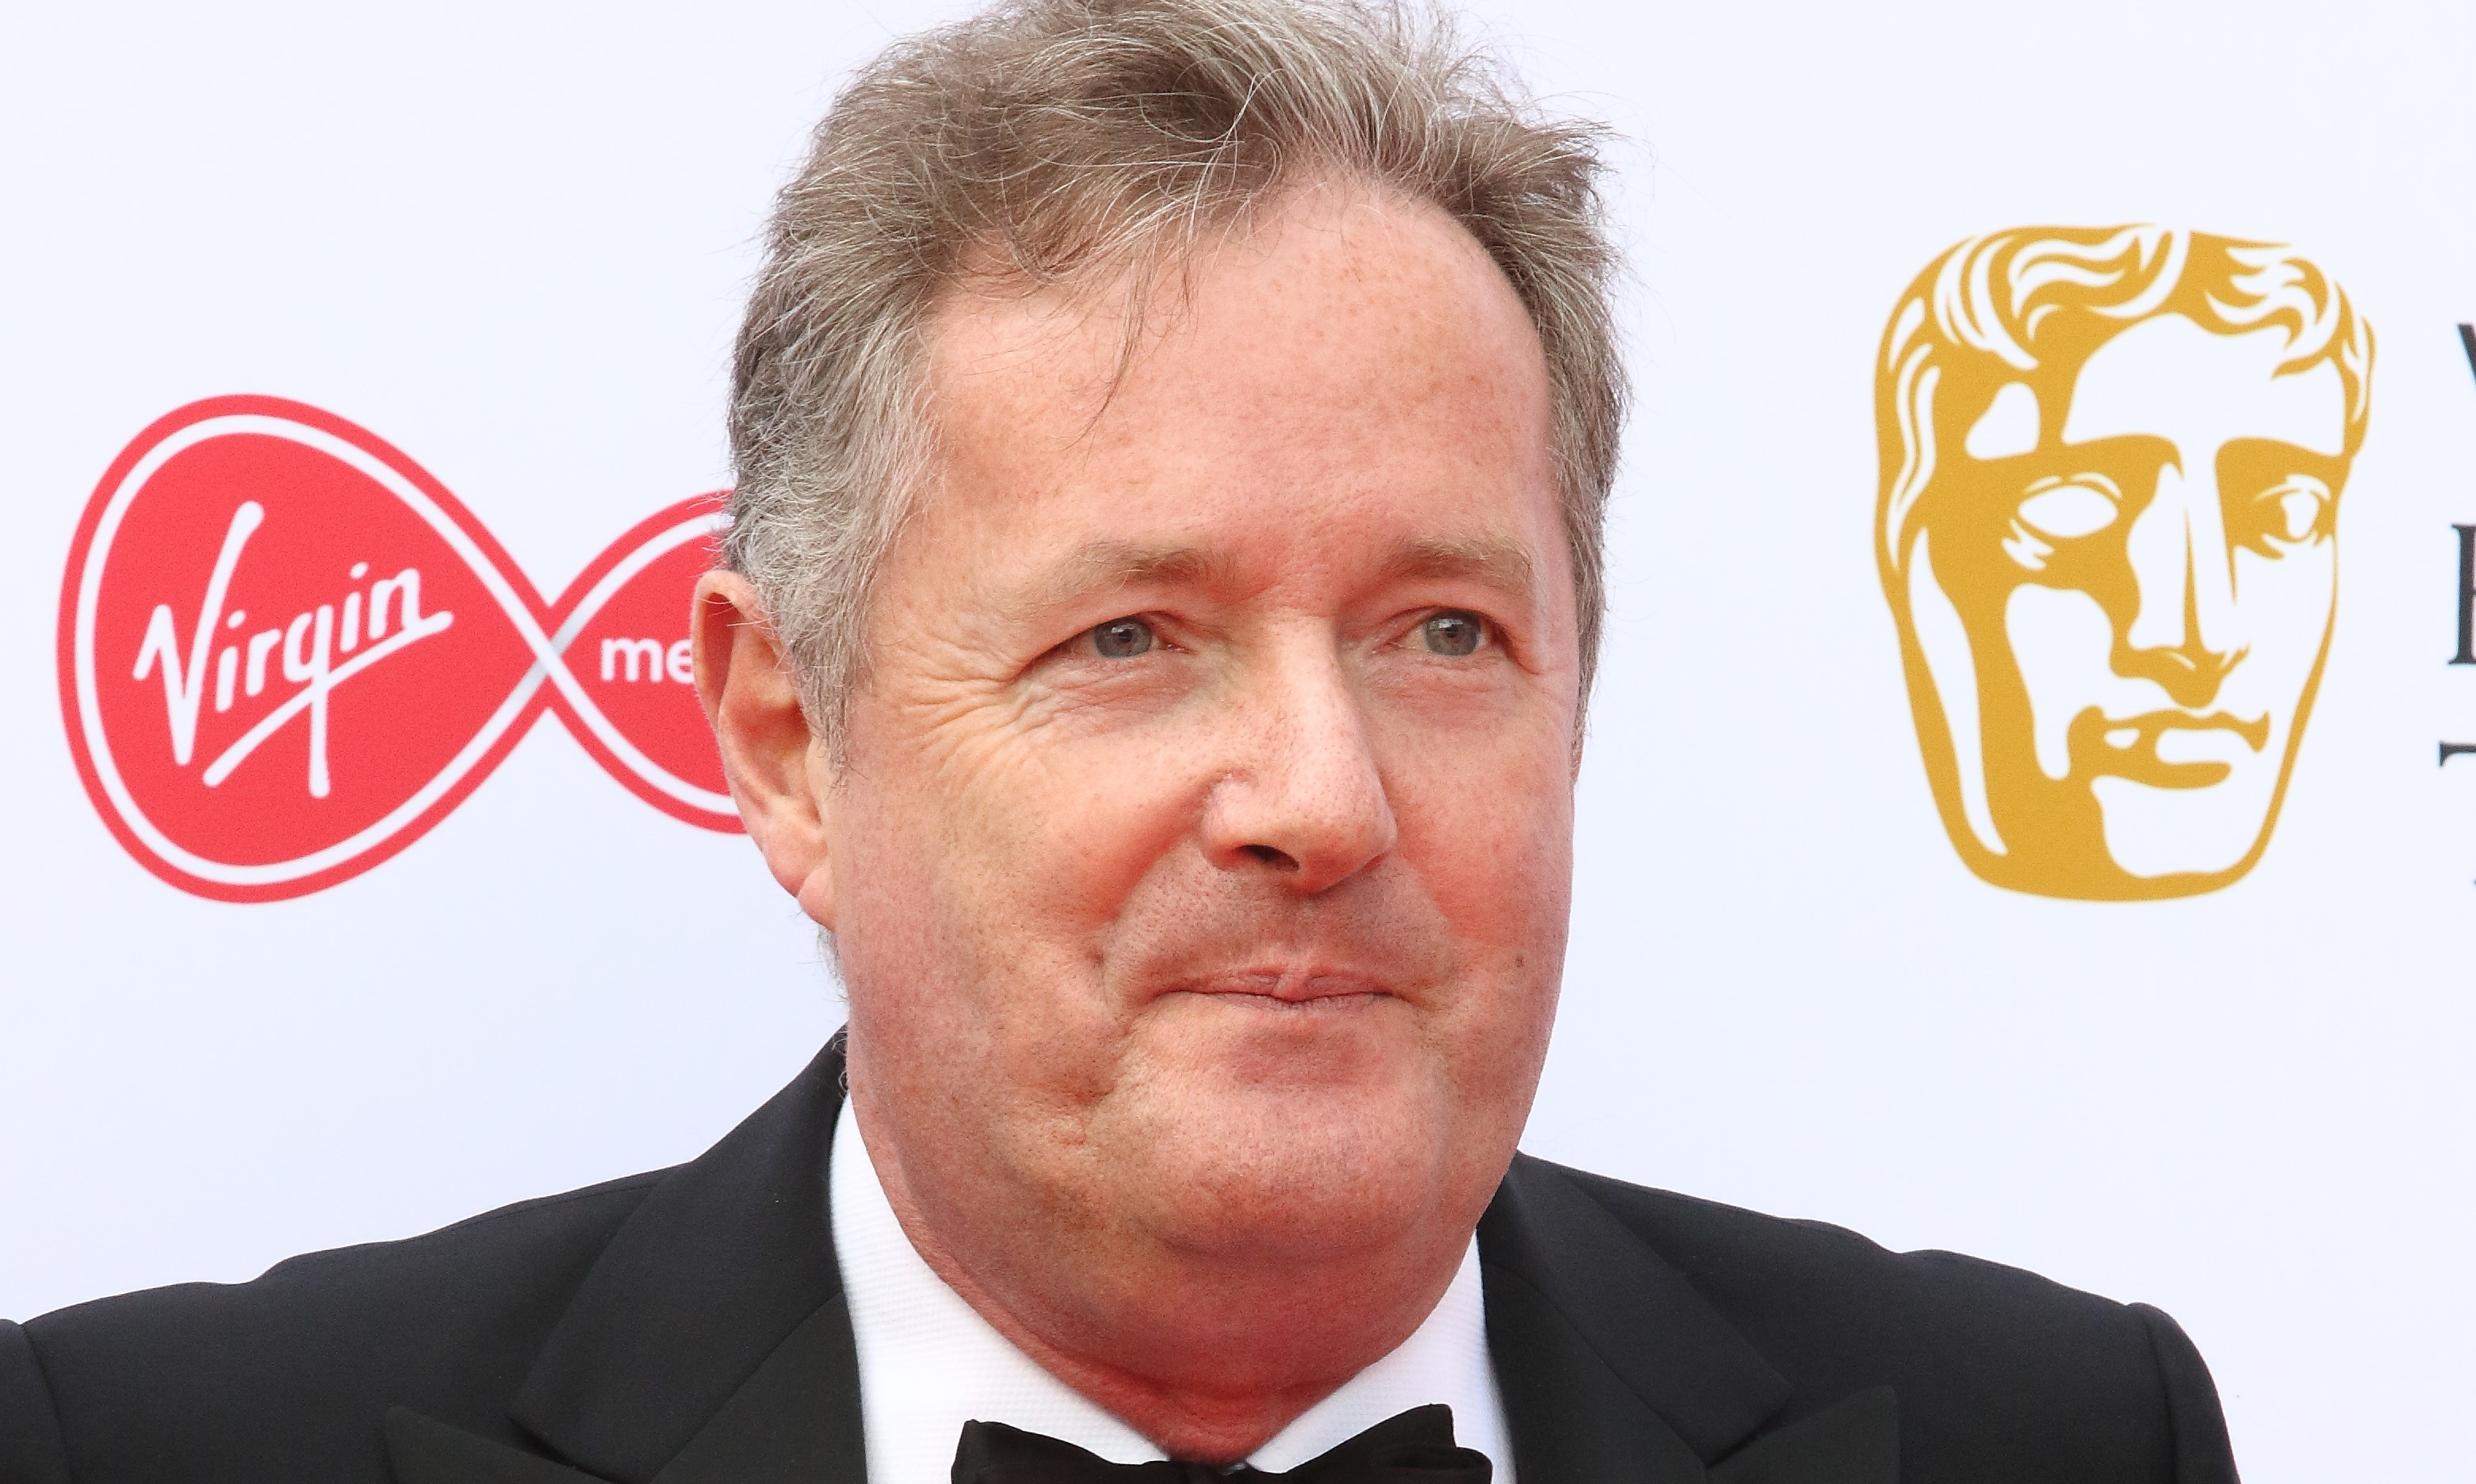 Parents vent their anger as Piers Morgan talks about KILLING on breakfast radio